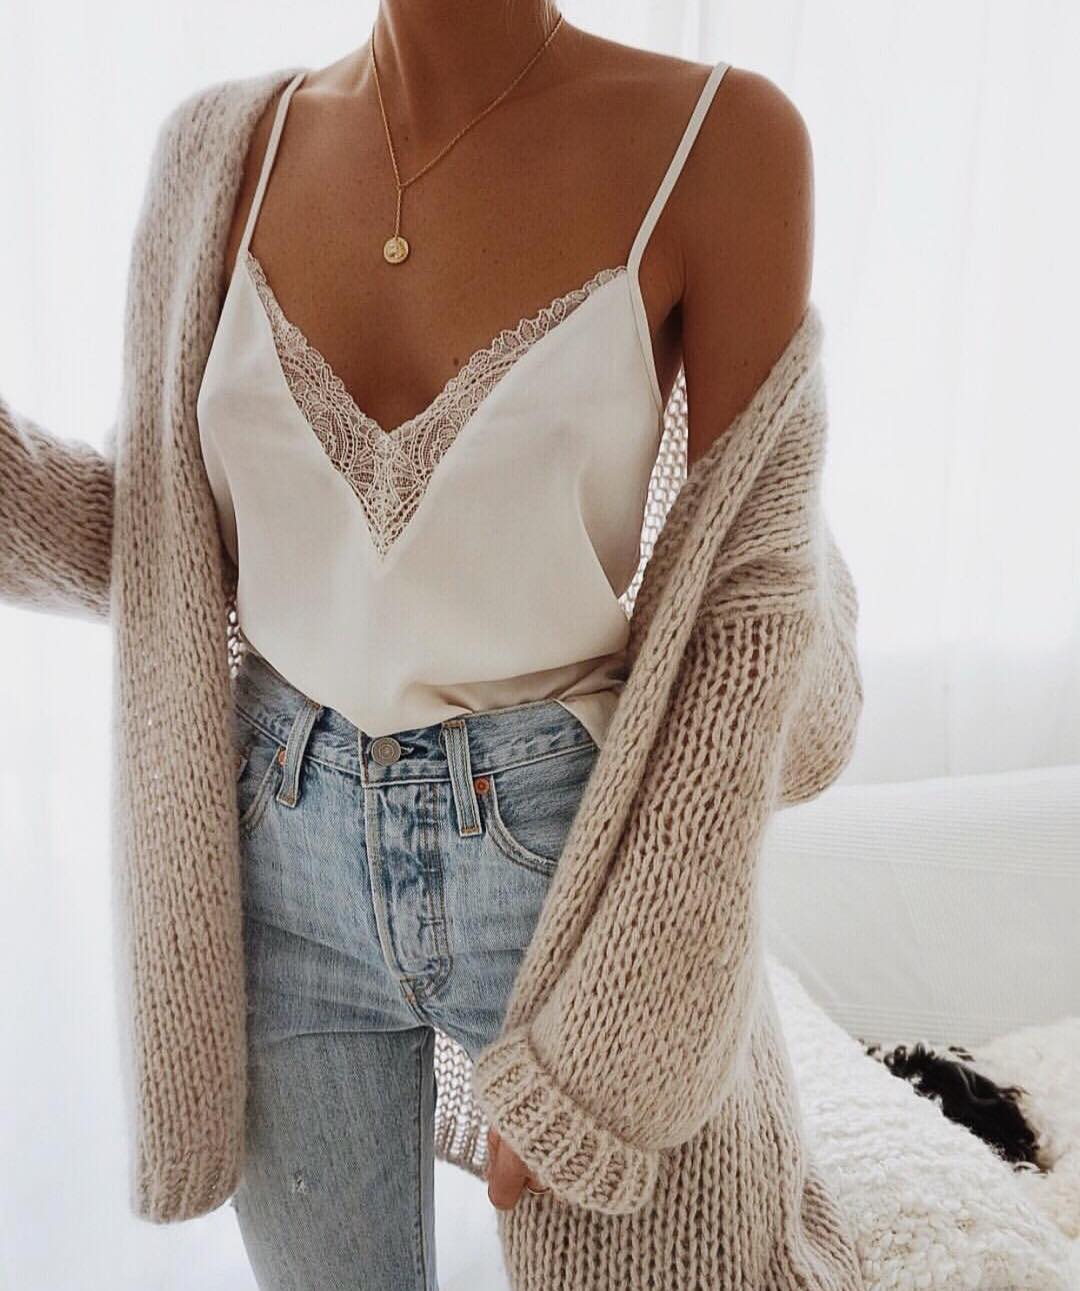 White Slip Tank Top With Lace Detailing With Beige Cardigan and Wash Jeans 2019